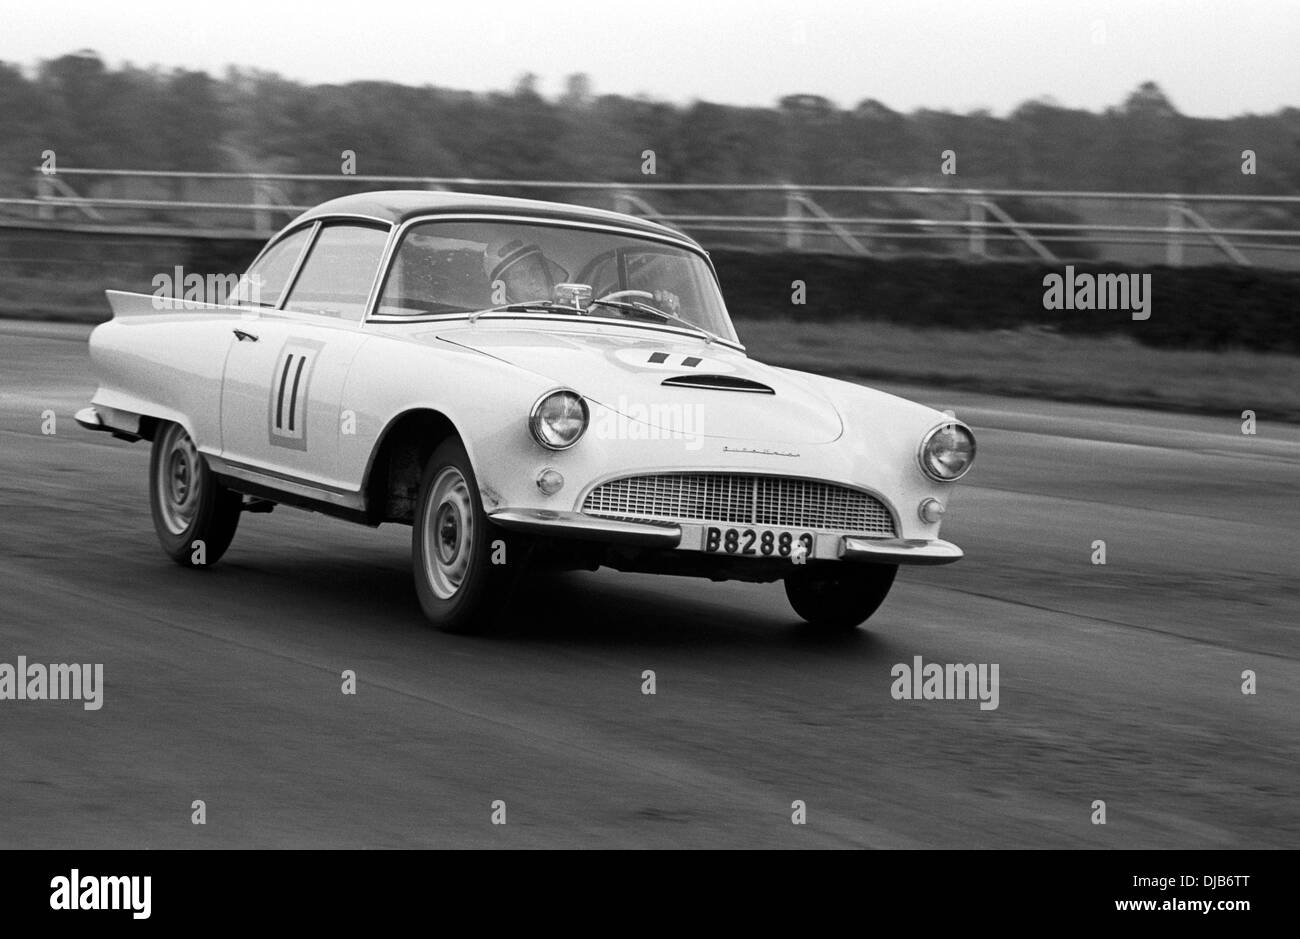 Saloon car B82889 racing in the International Trophy, Silverstone, England 1960. - Stock Image